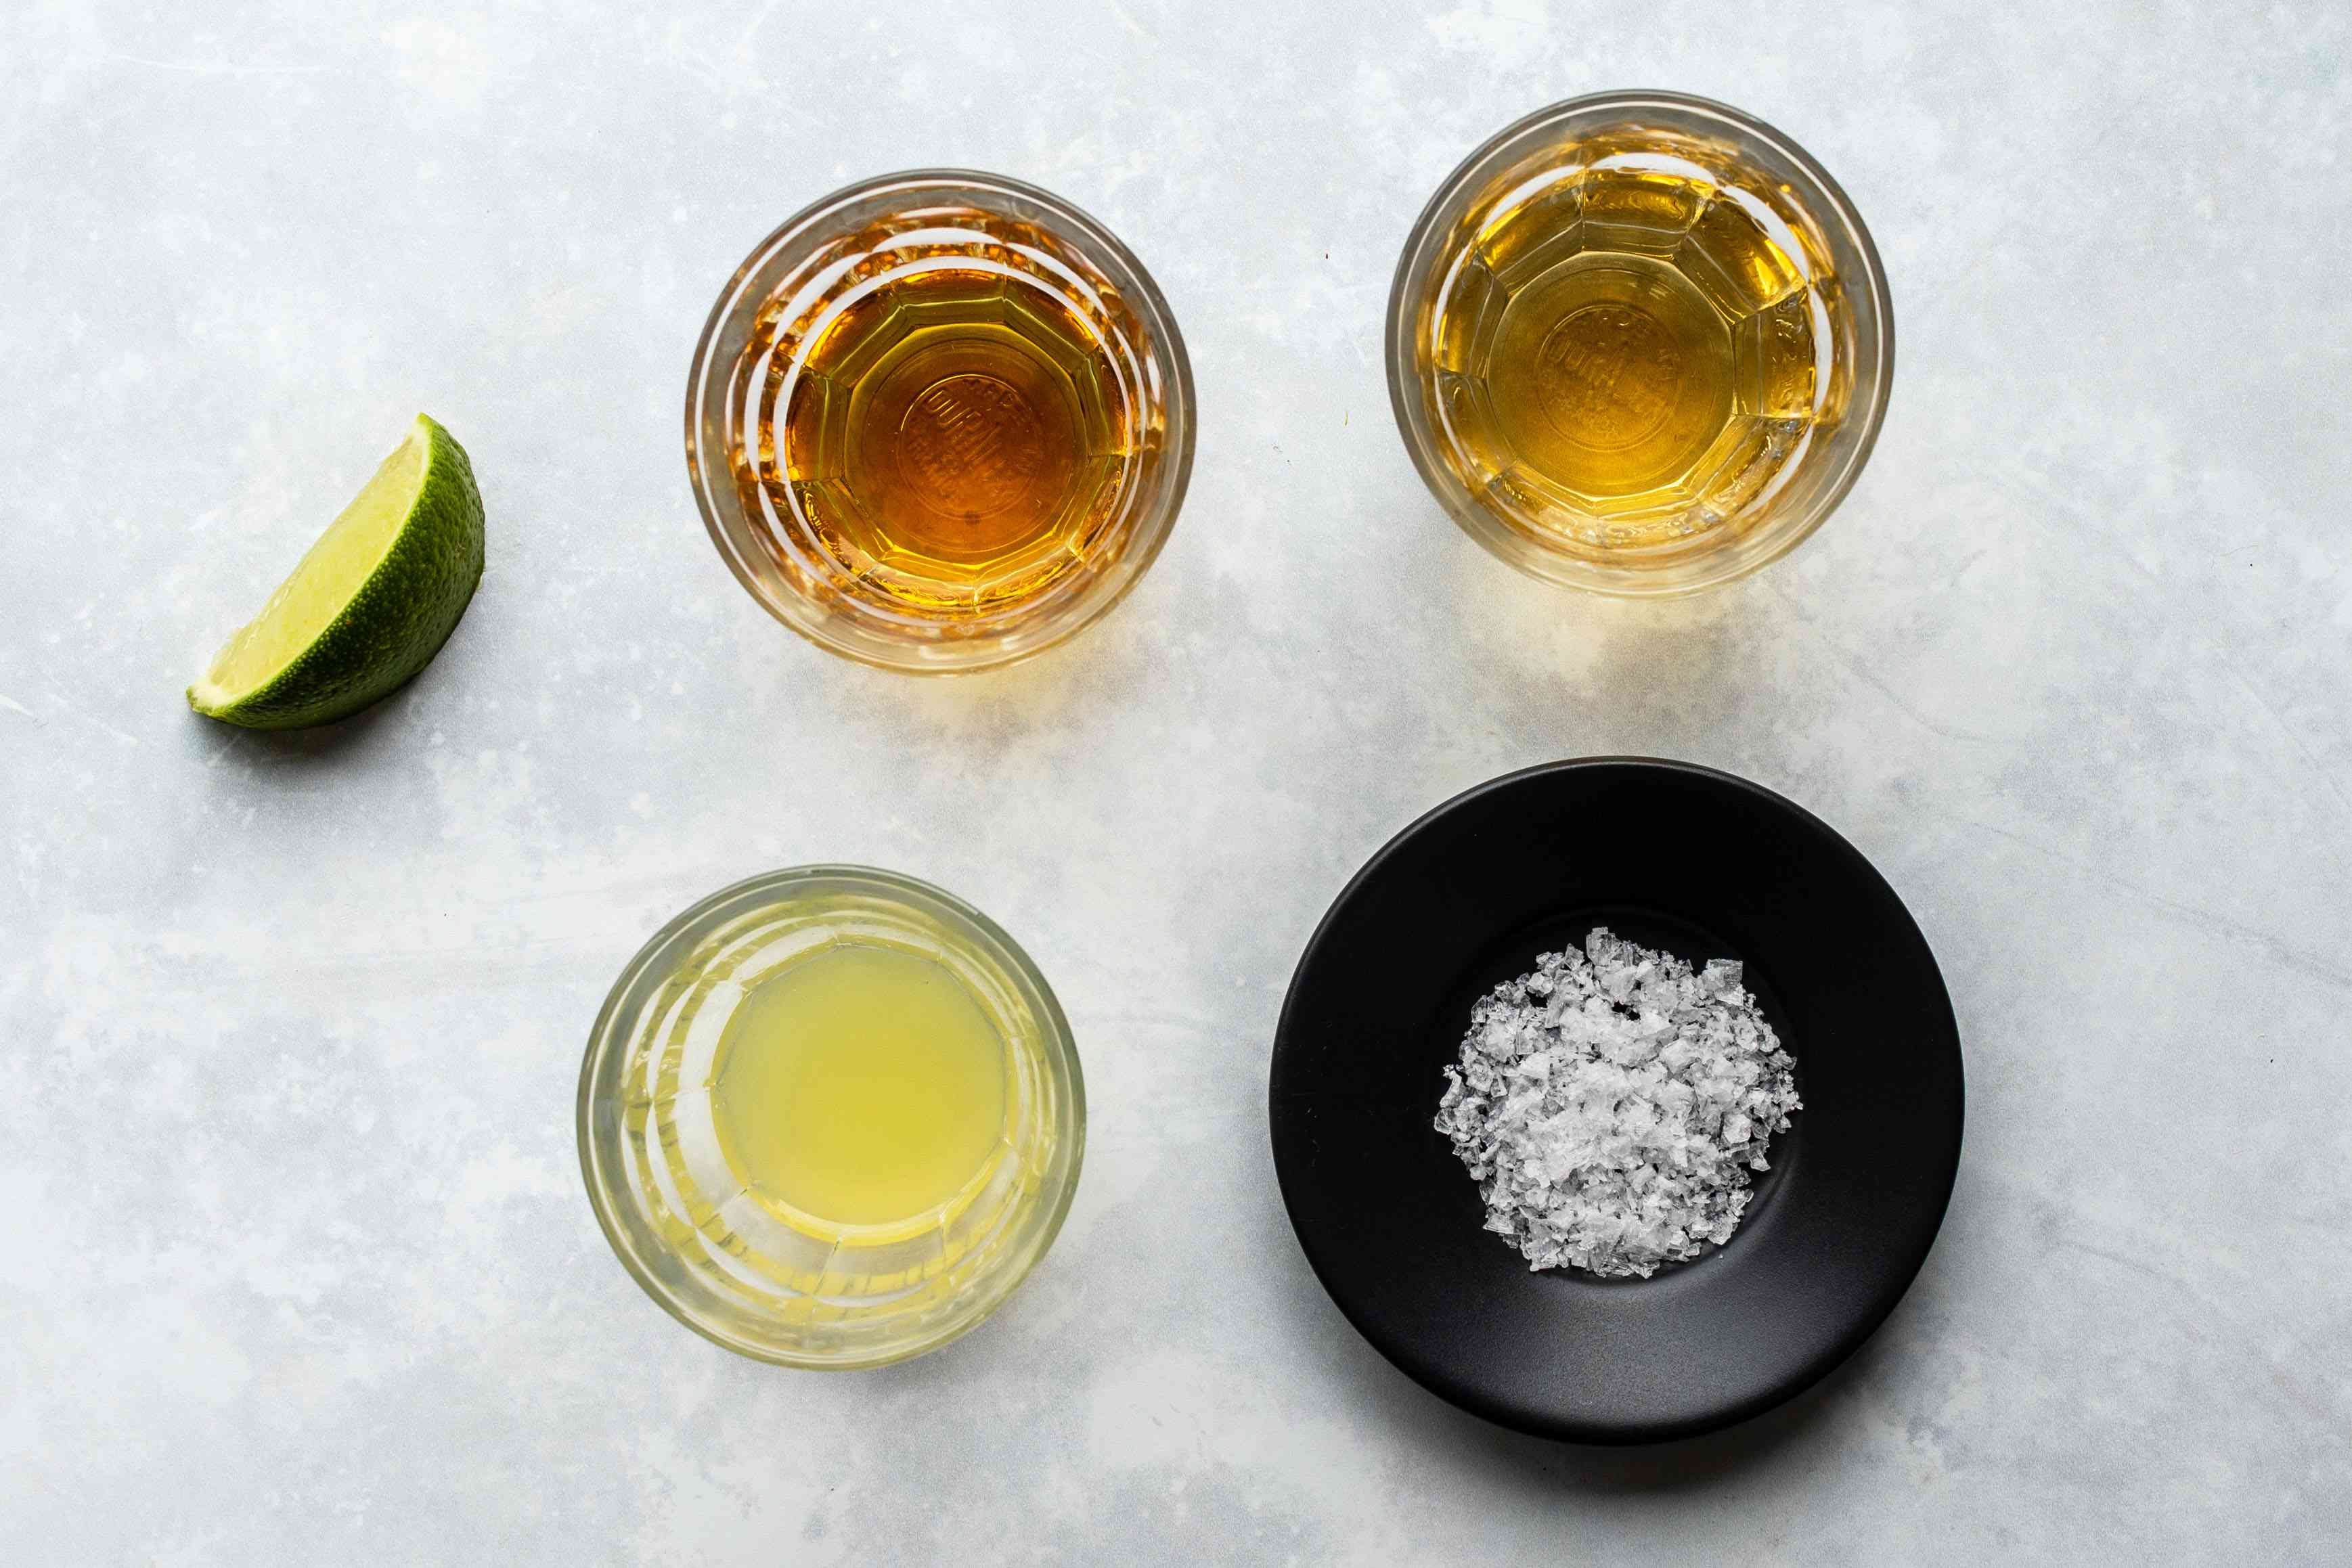 Ingredients for a Cadillac margarita